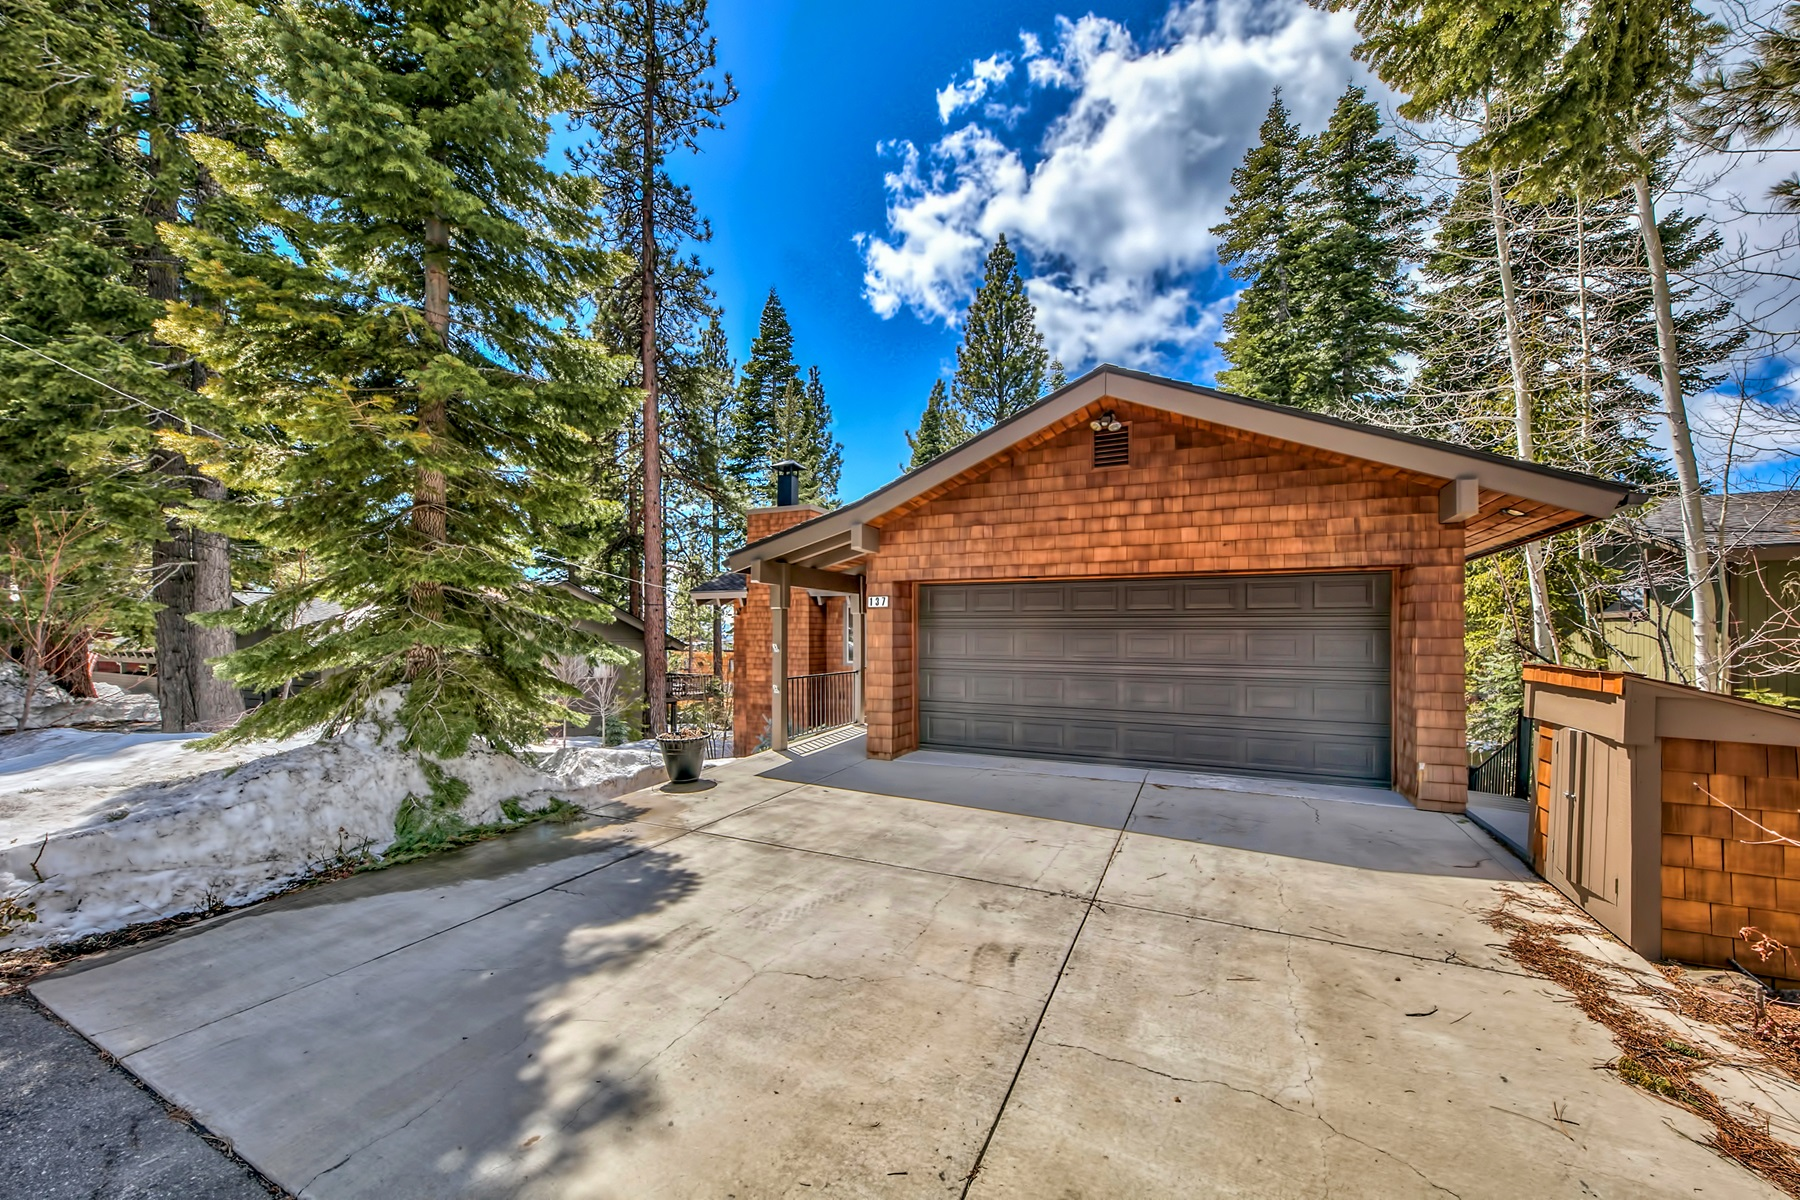 Single Family Homes for Active at 137 Marlette Drive, Tahoe City, CA 137 Marlette Drive Tahoe City, California 96145 United States